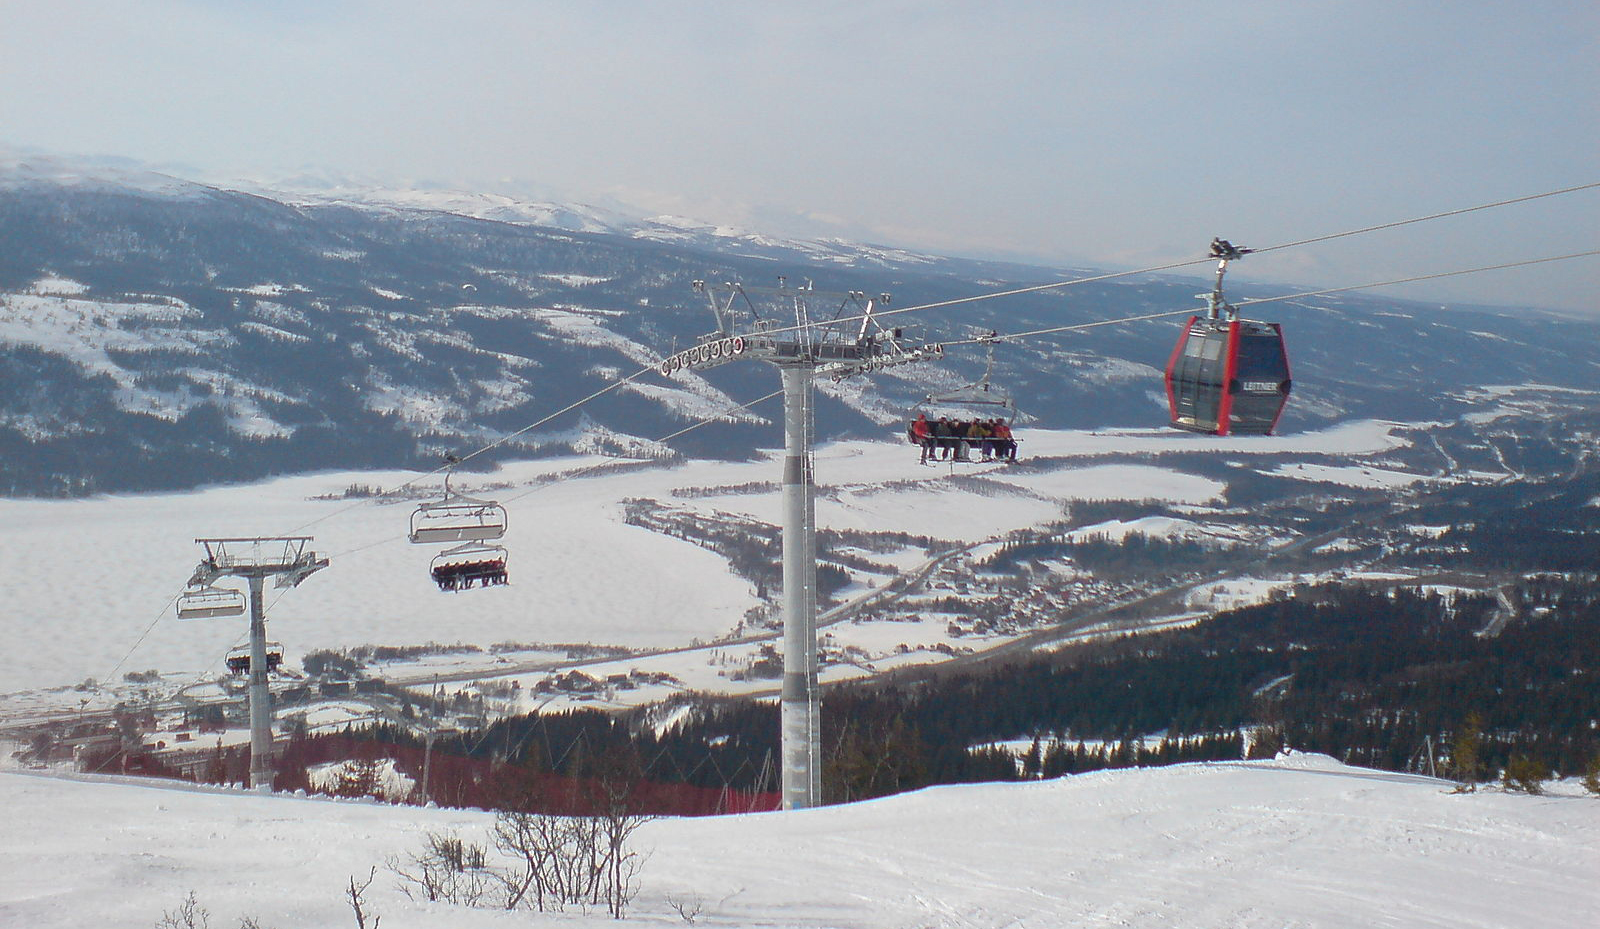 Skidlift Åre